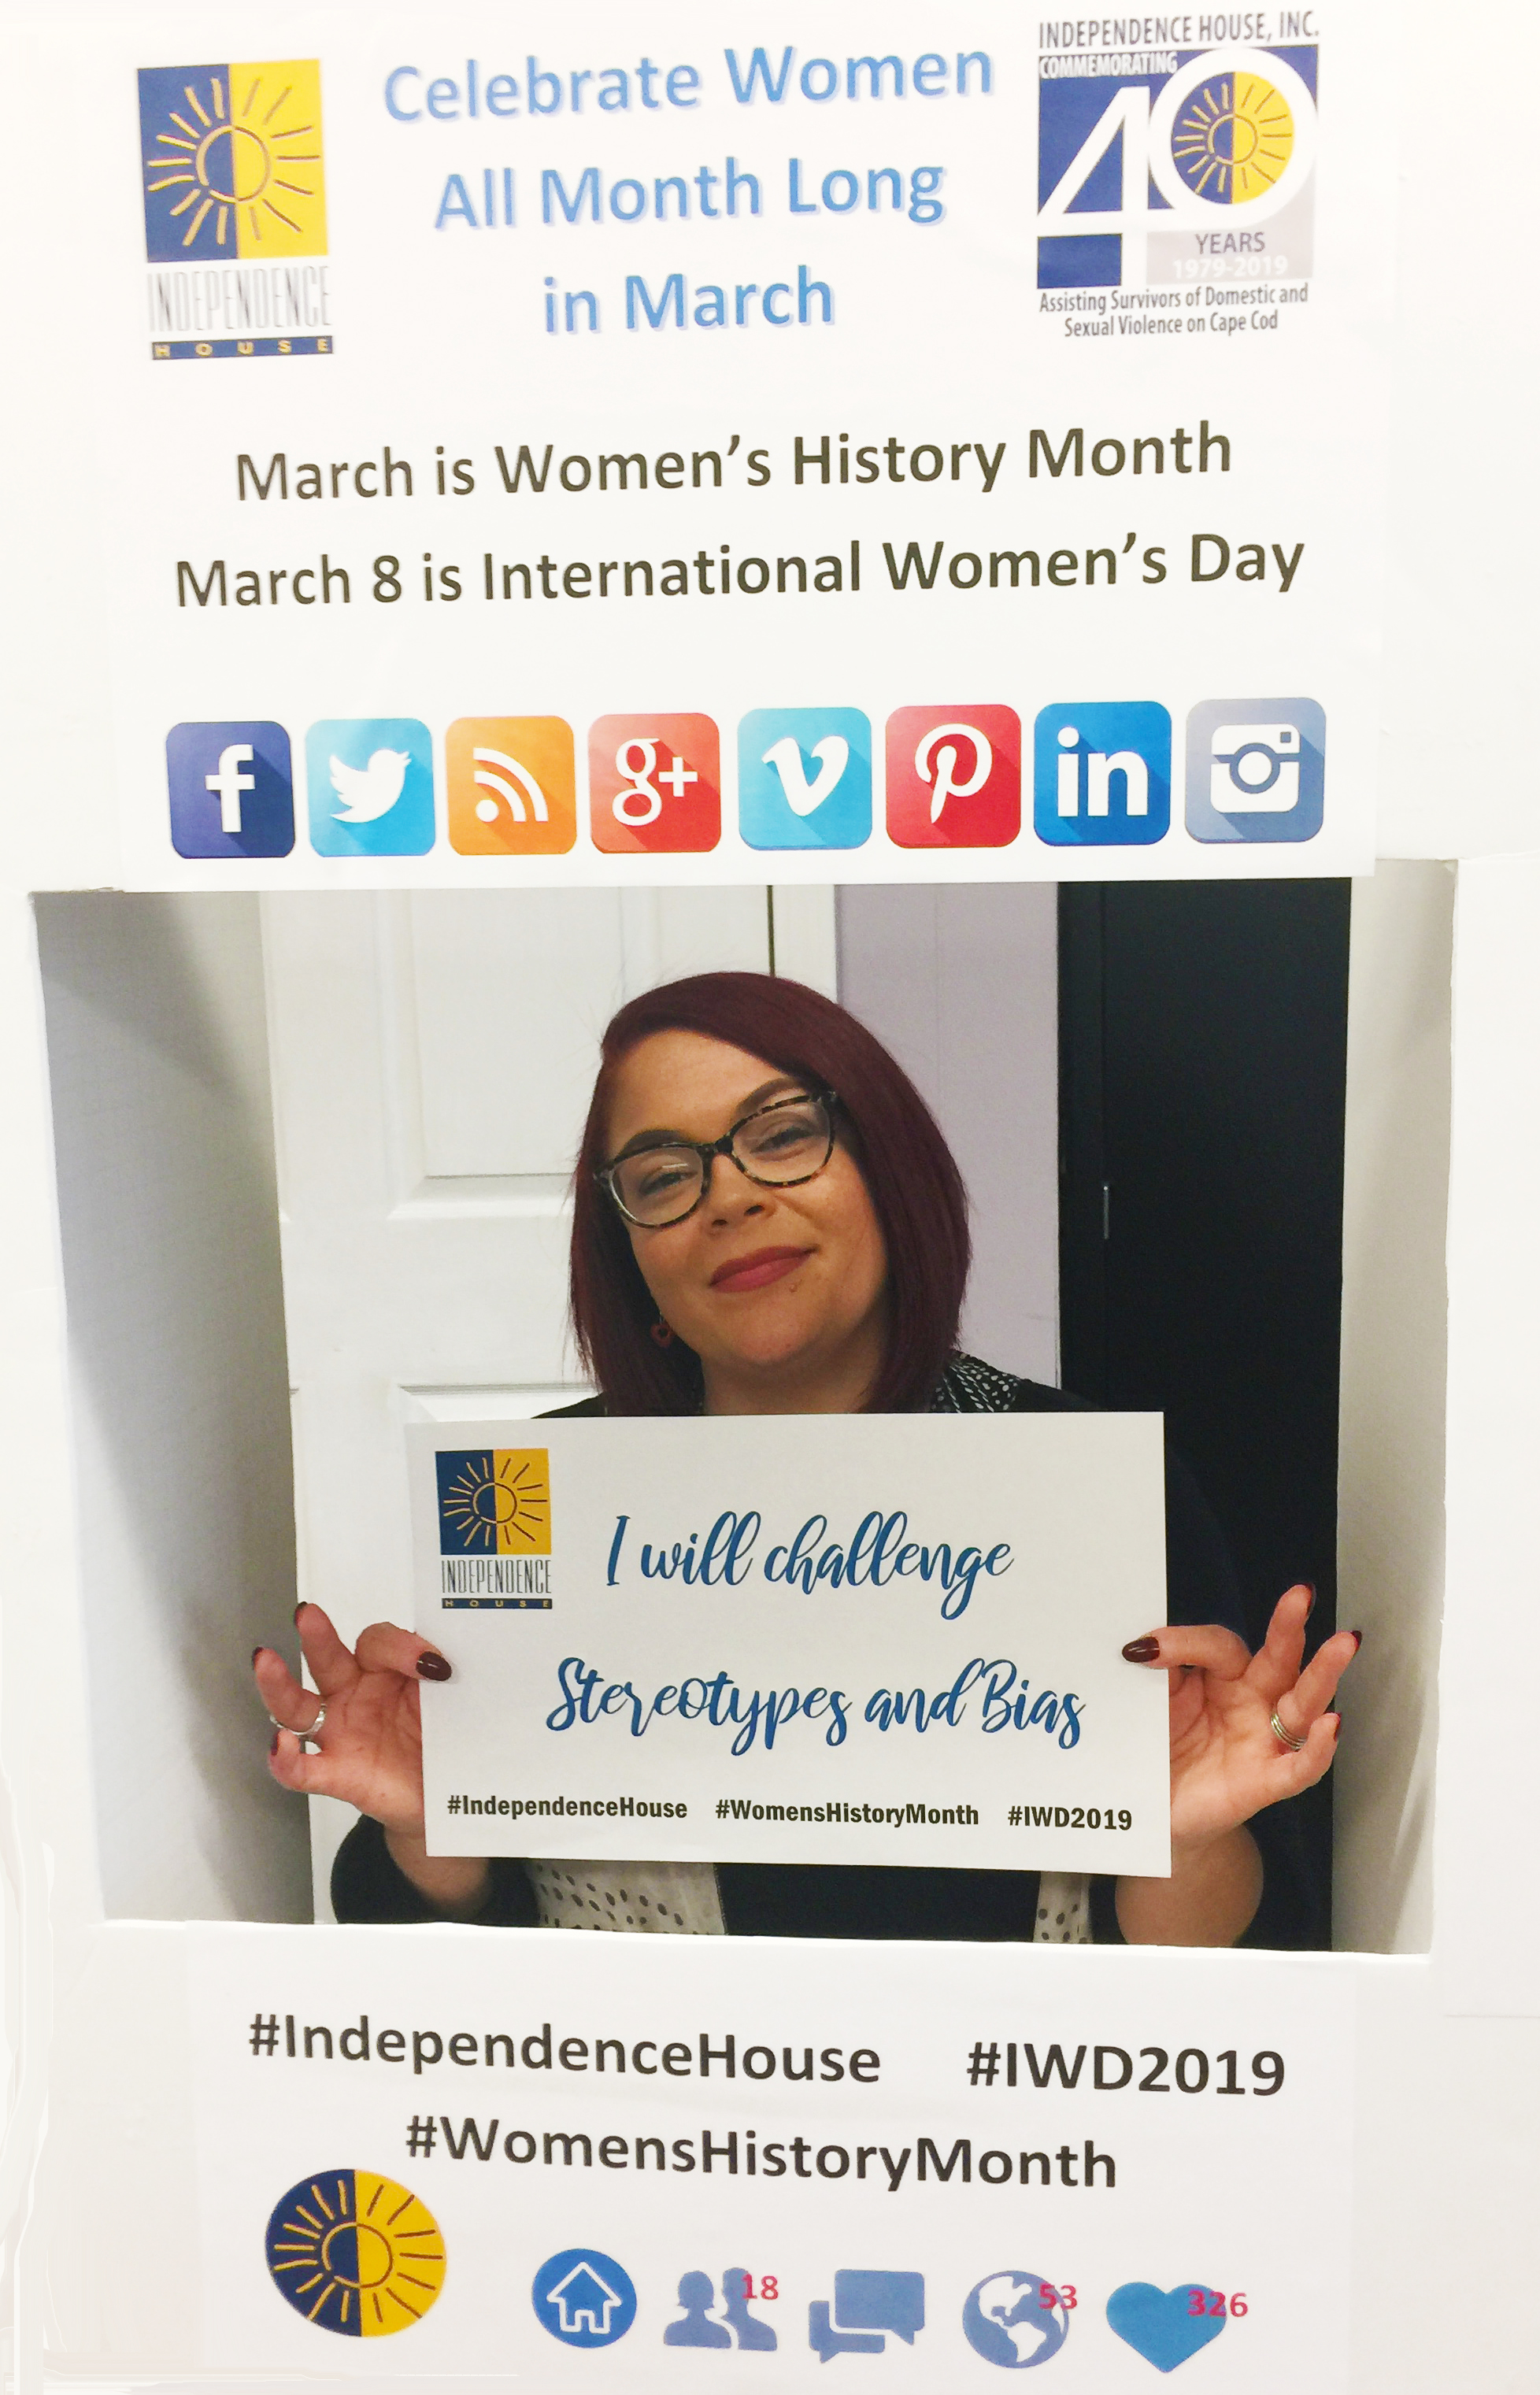 Celebrate Women during Women's History Month with your social media selfie